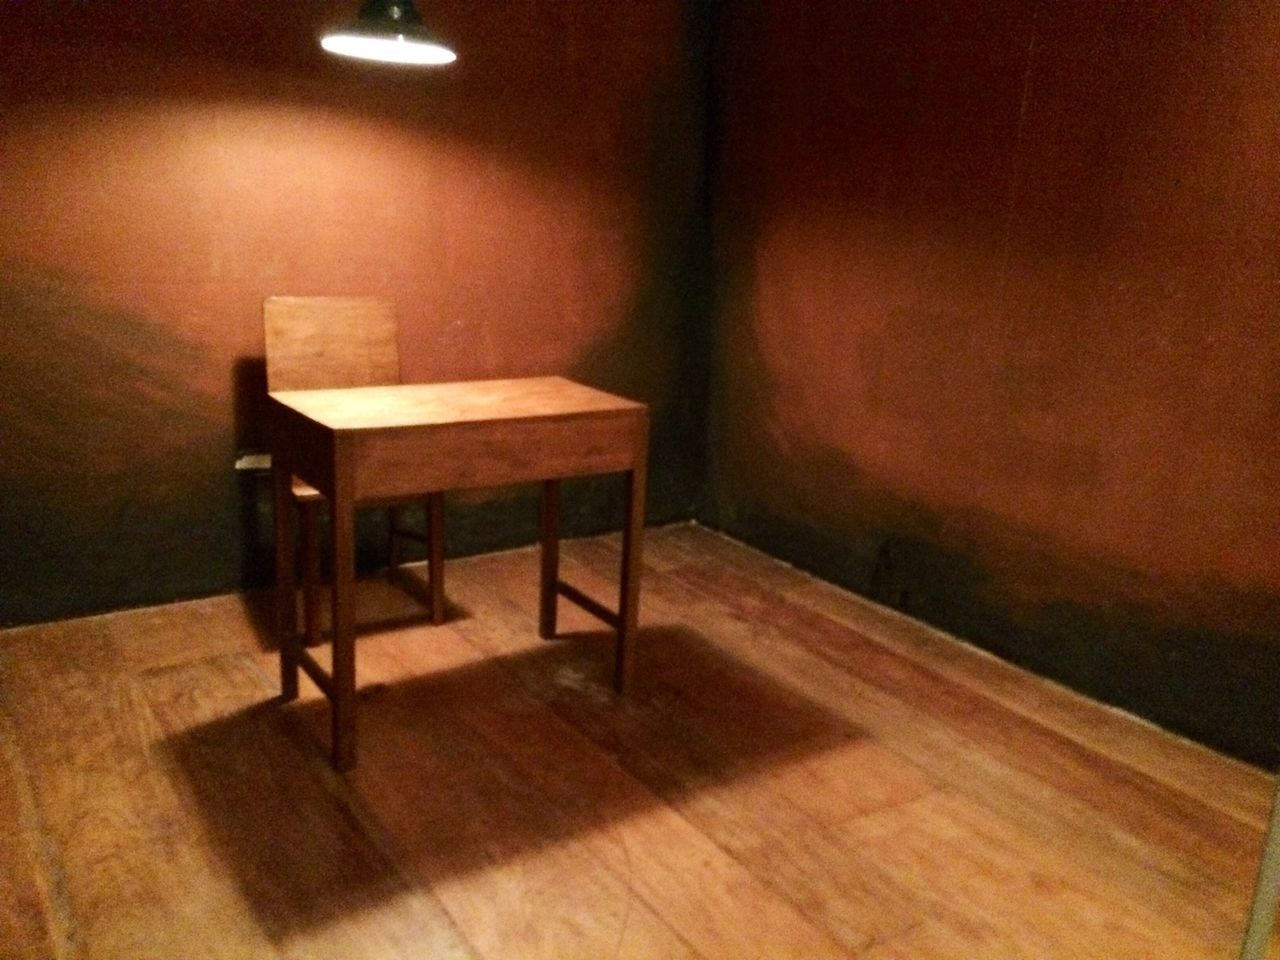 interrogation Table Chair Light Hanging Light Interogation Room Philippines